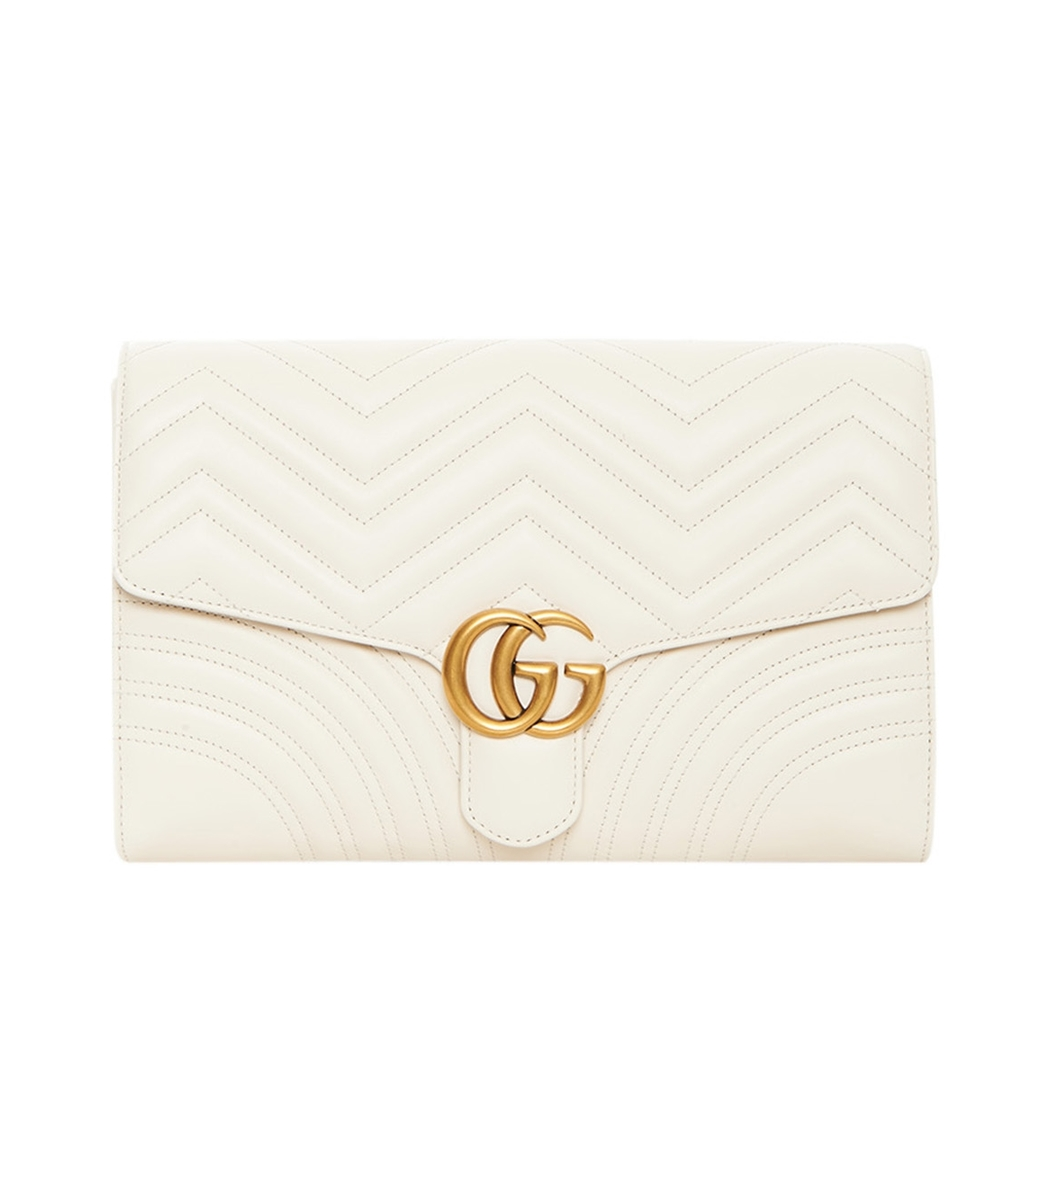 f19633d237ce Gucci 'Gg Marmont' Leather Clutch In Wht | ModeSens